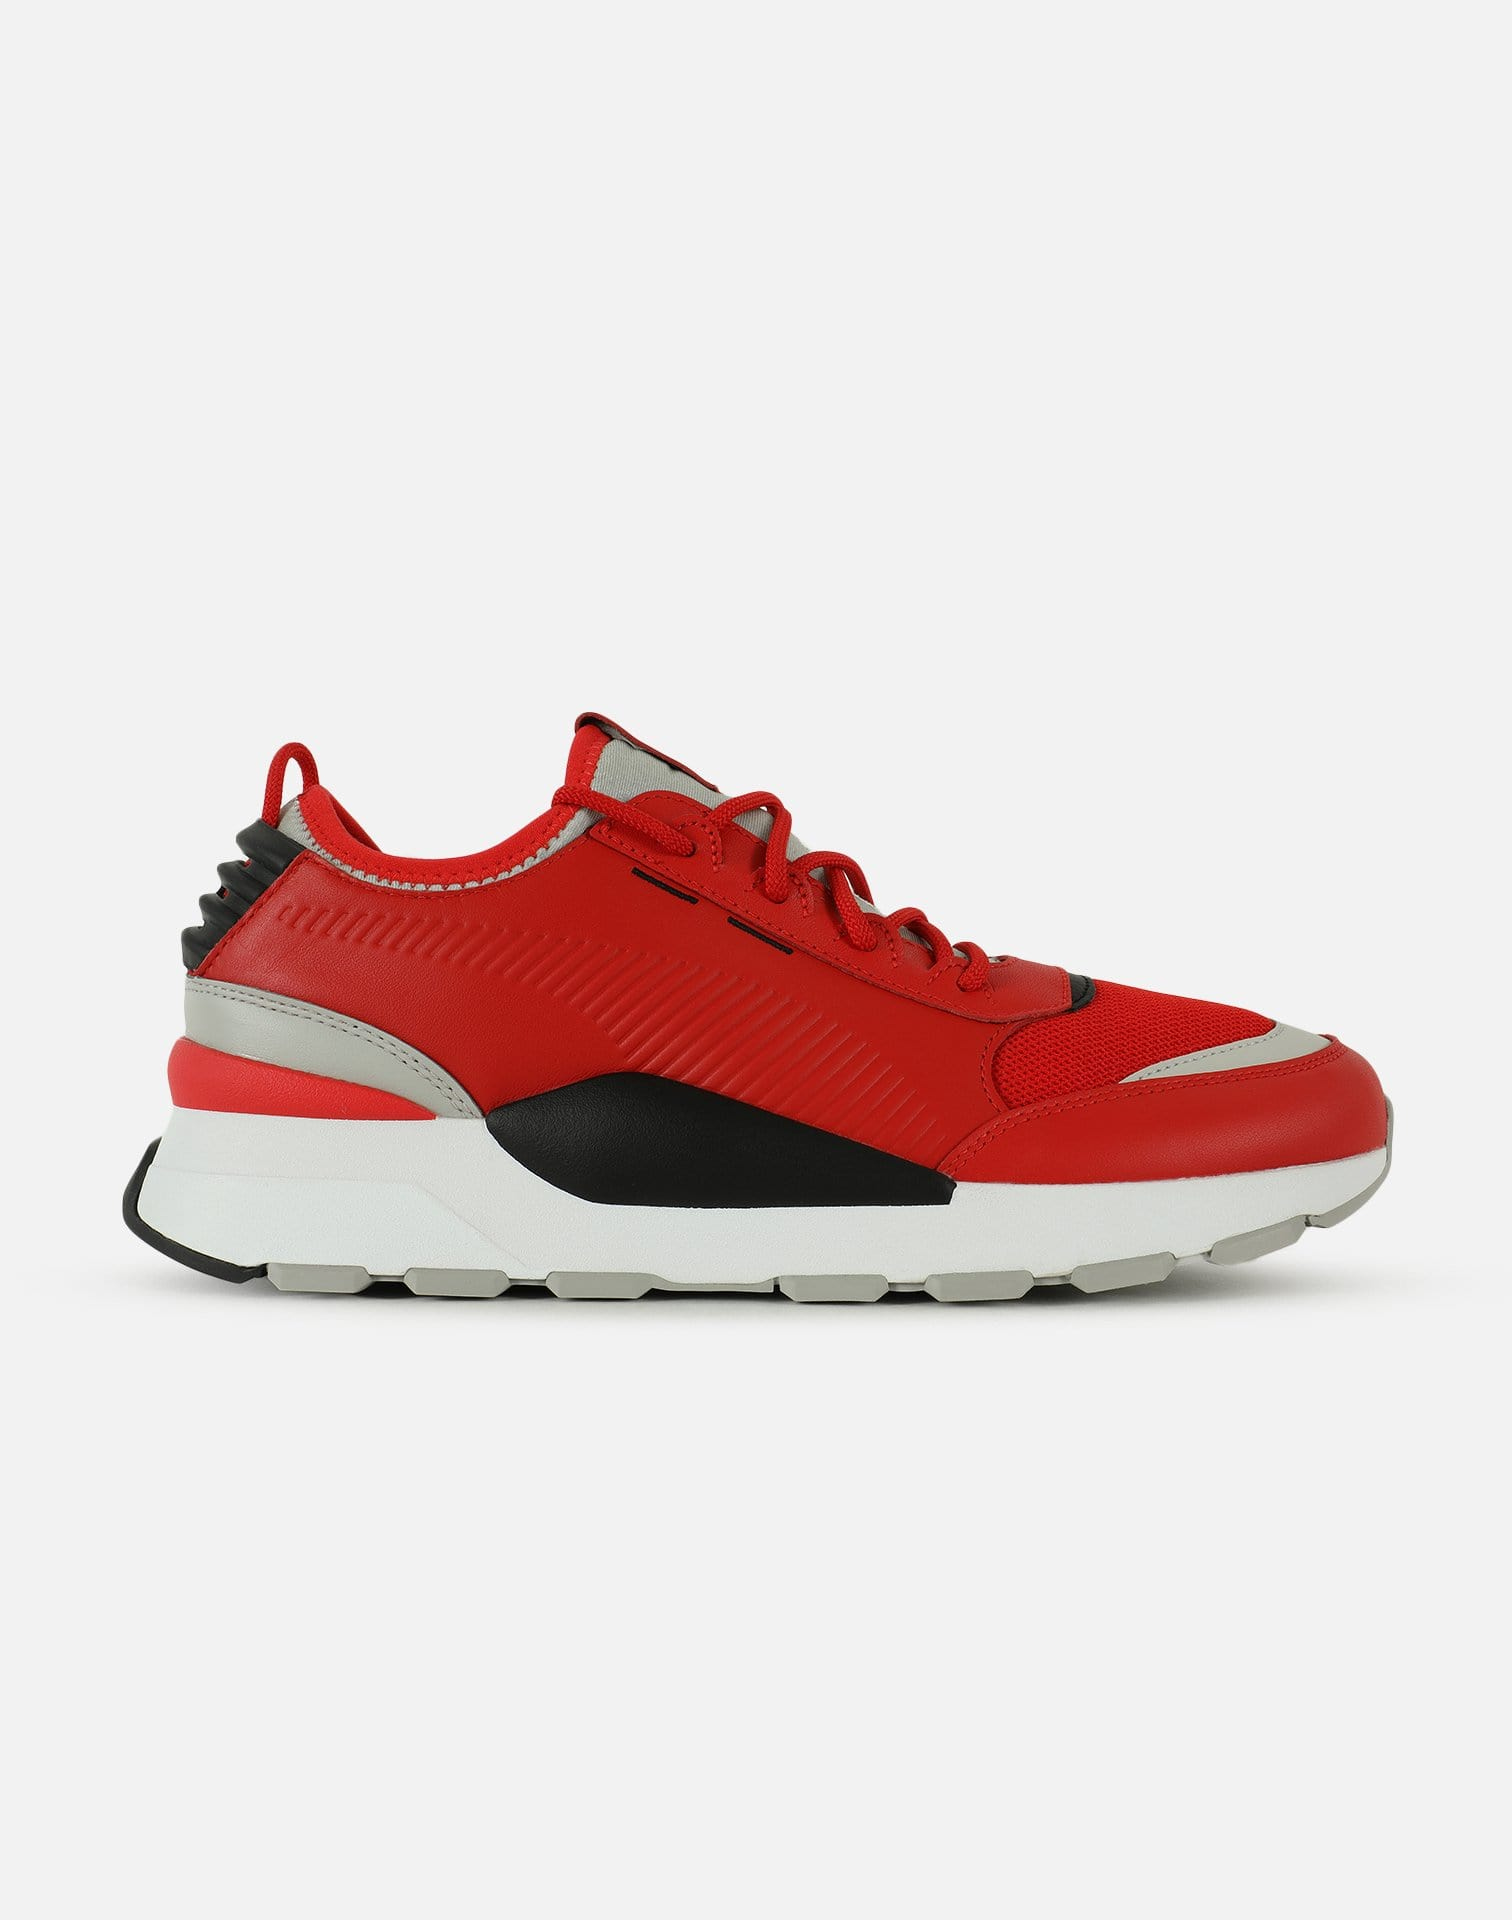 PUMA Men's RS-0 'Sound'